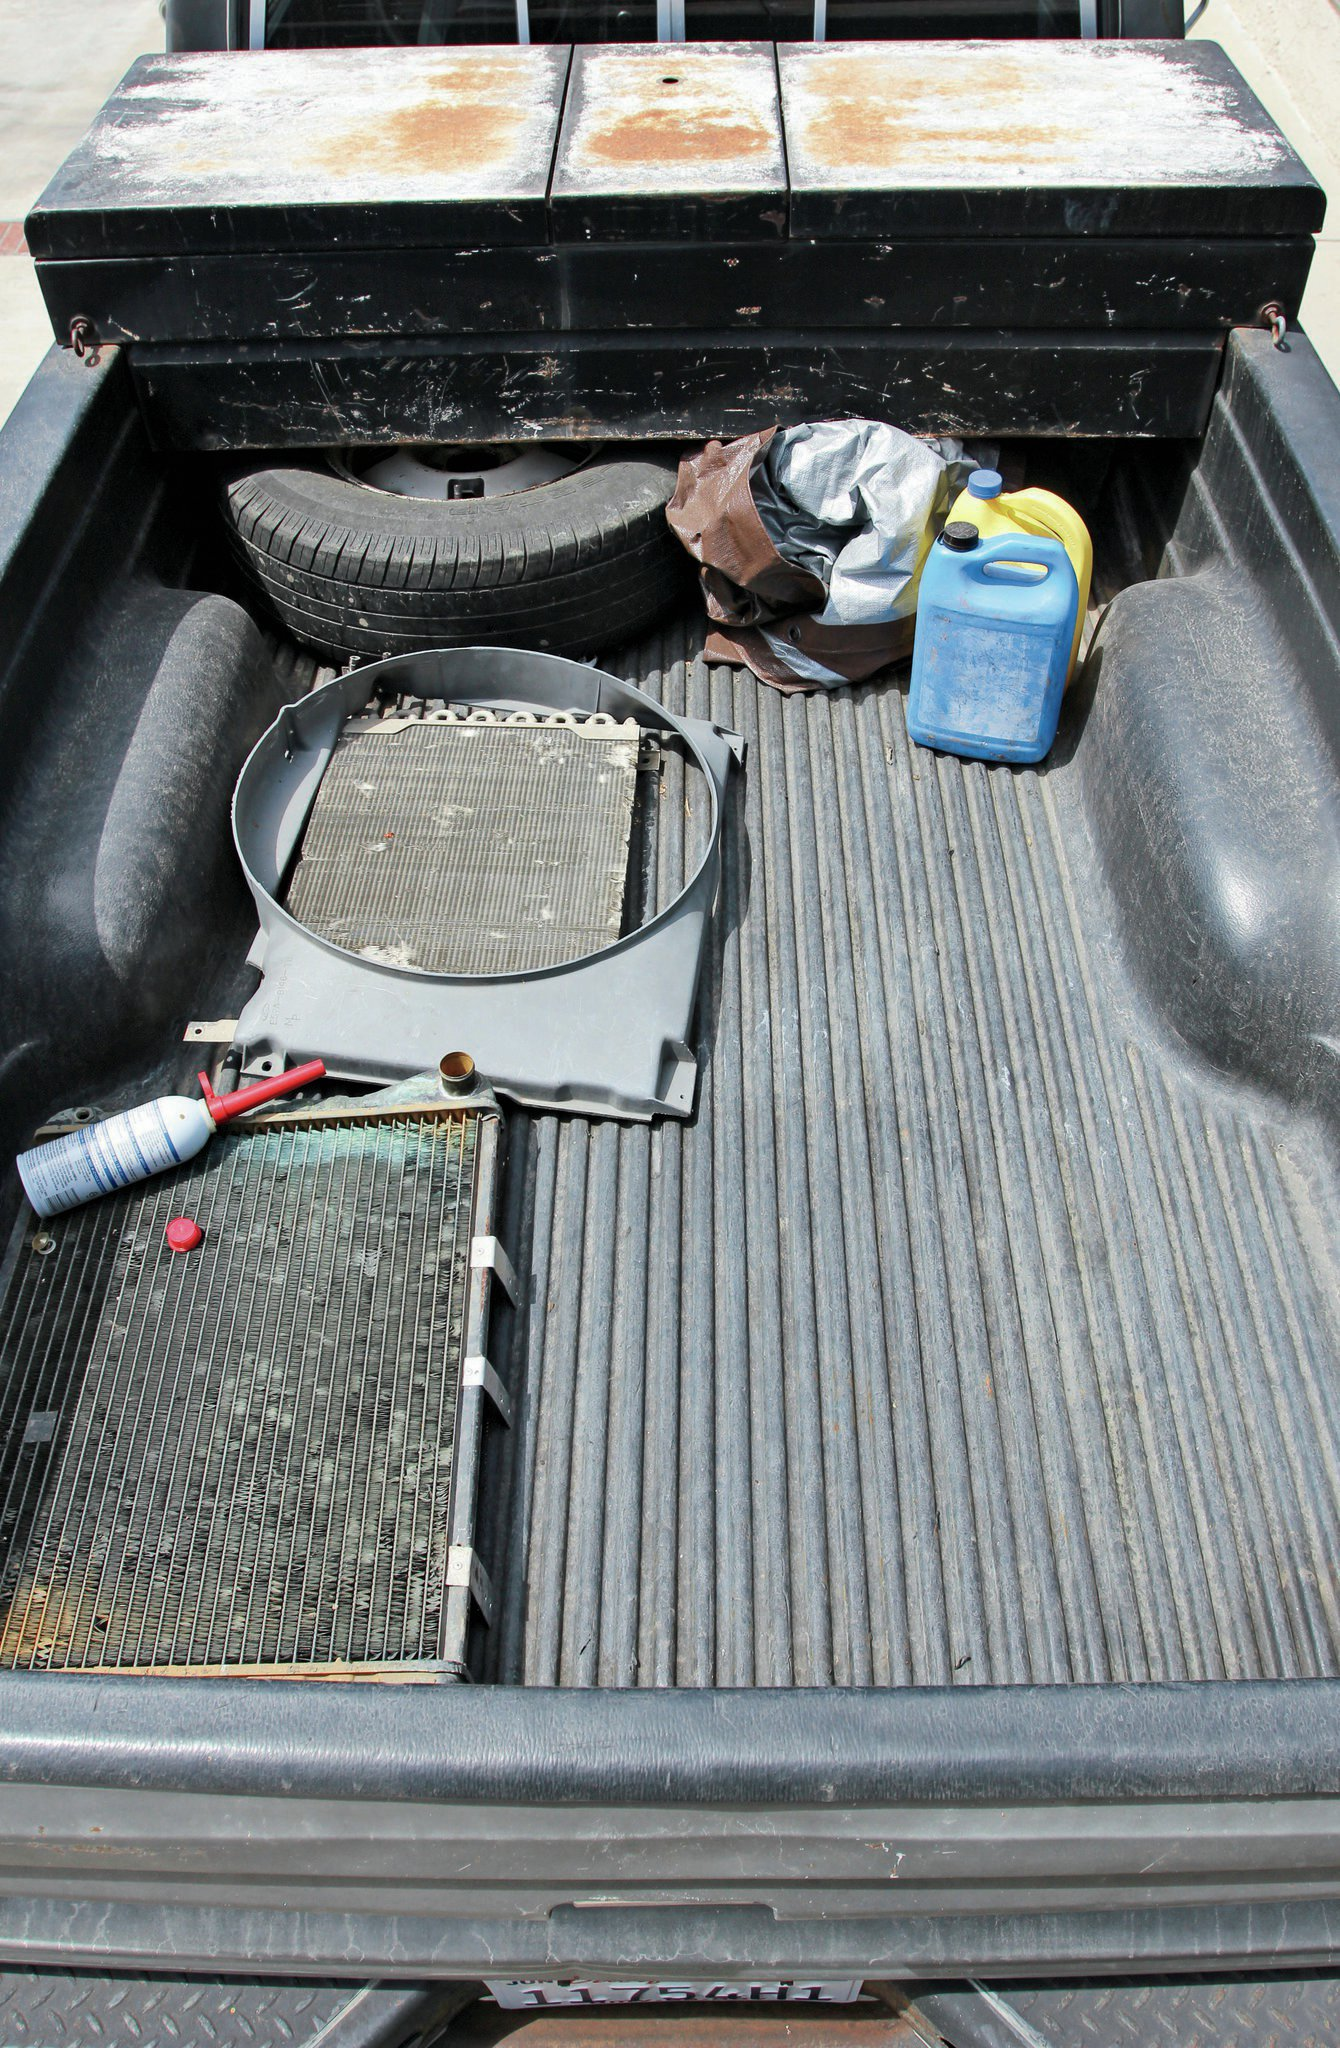 Herculiner White : herculiner, white, Herculiner, Roll-on, Bedliner, How-to